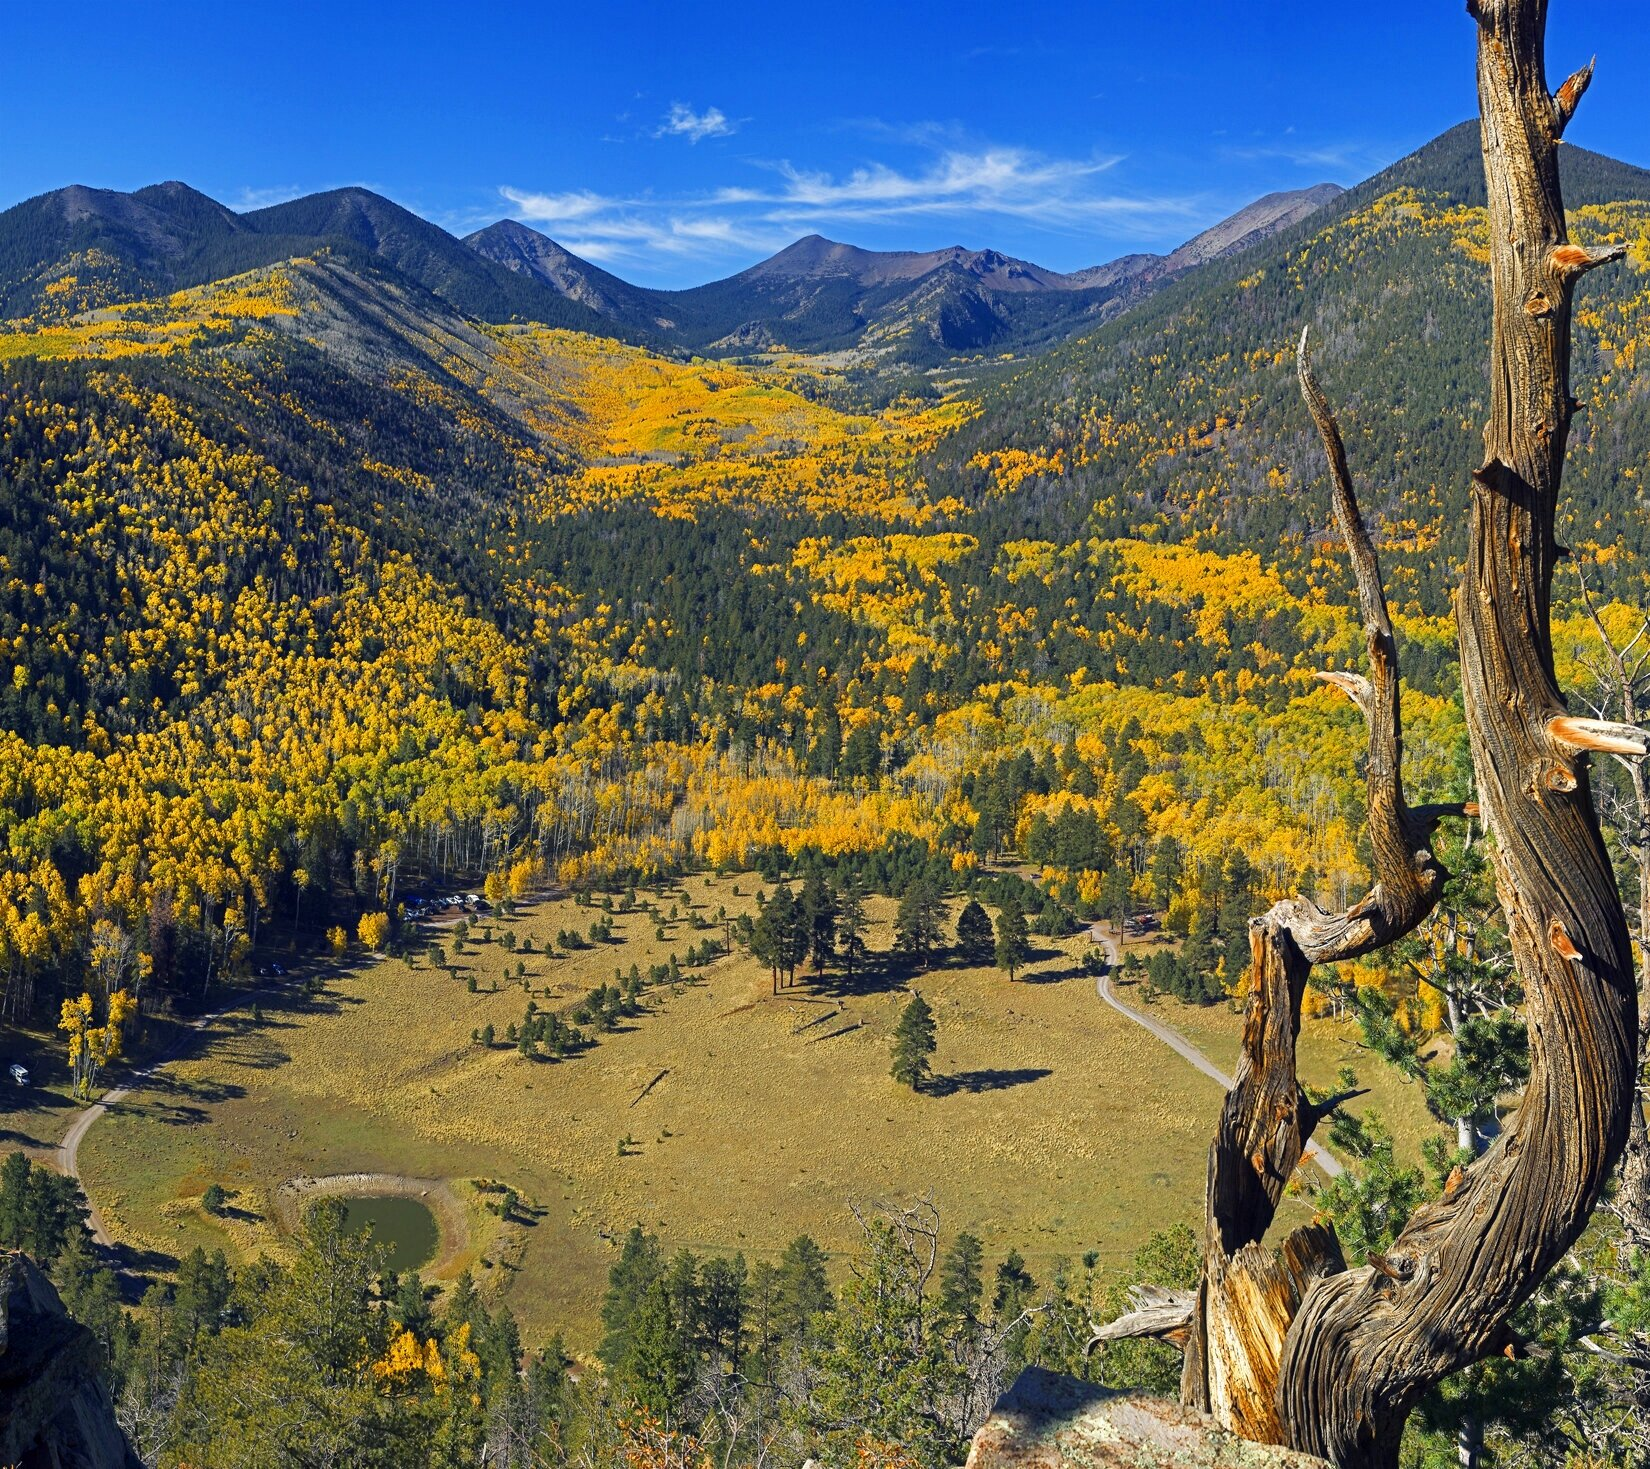 Image courtesy of Discover Flagstaff